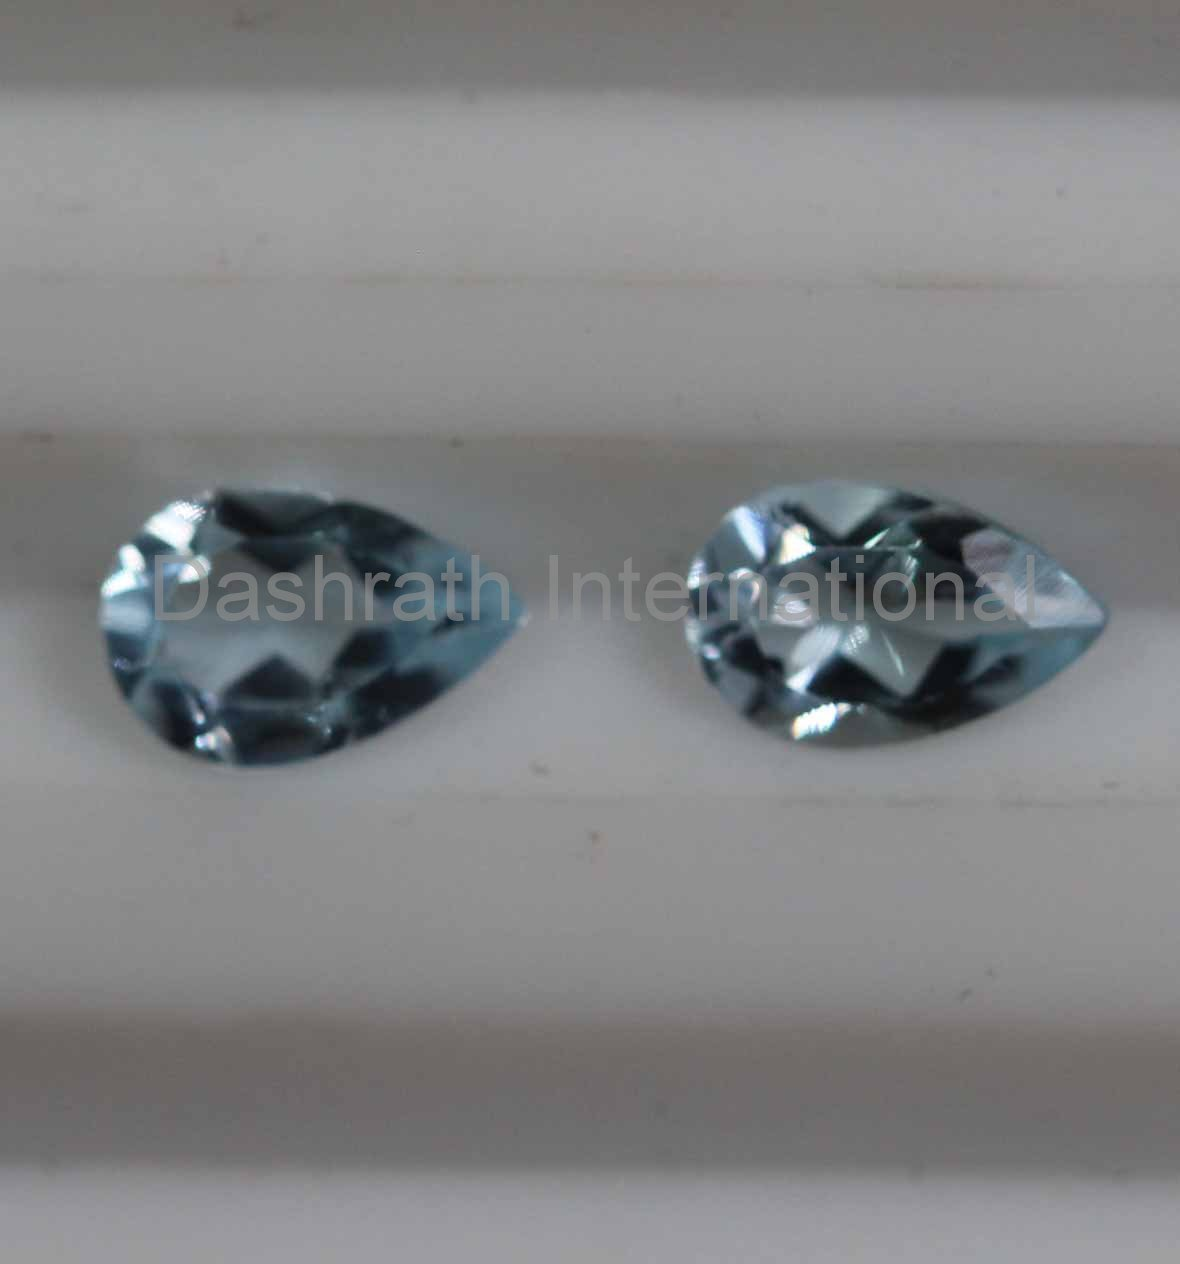 8x6mm Natural Sky Blue Topaz Faceted Cut Pear 1 Piece  Top Quality Loose Gemstone